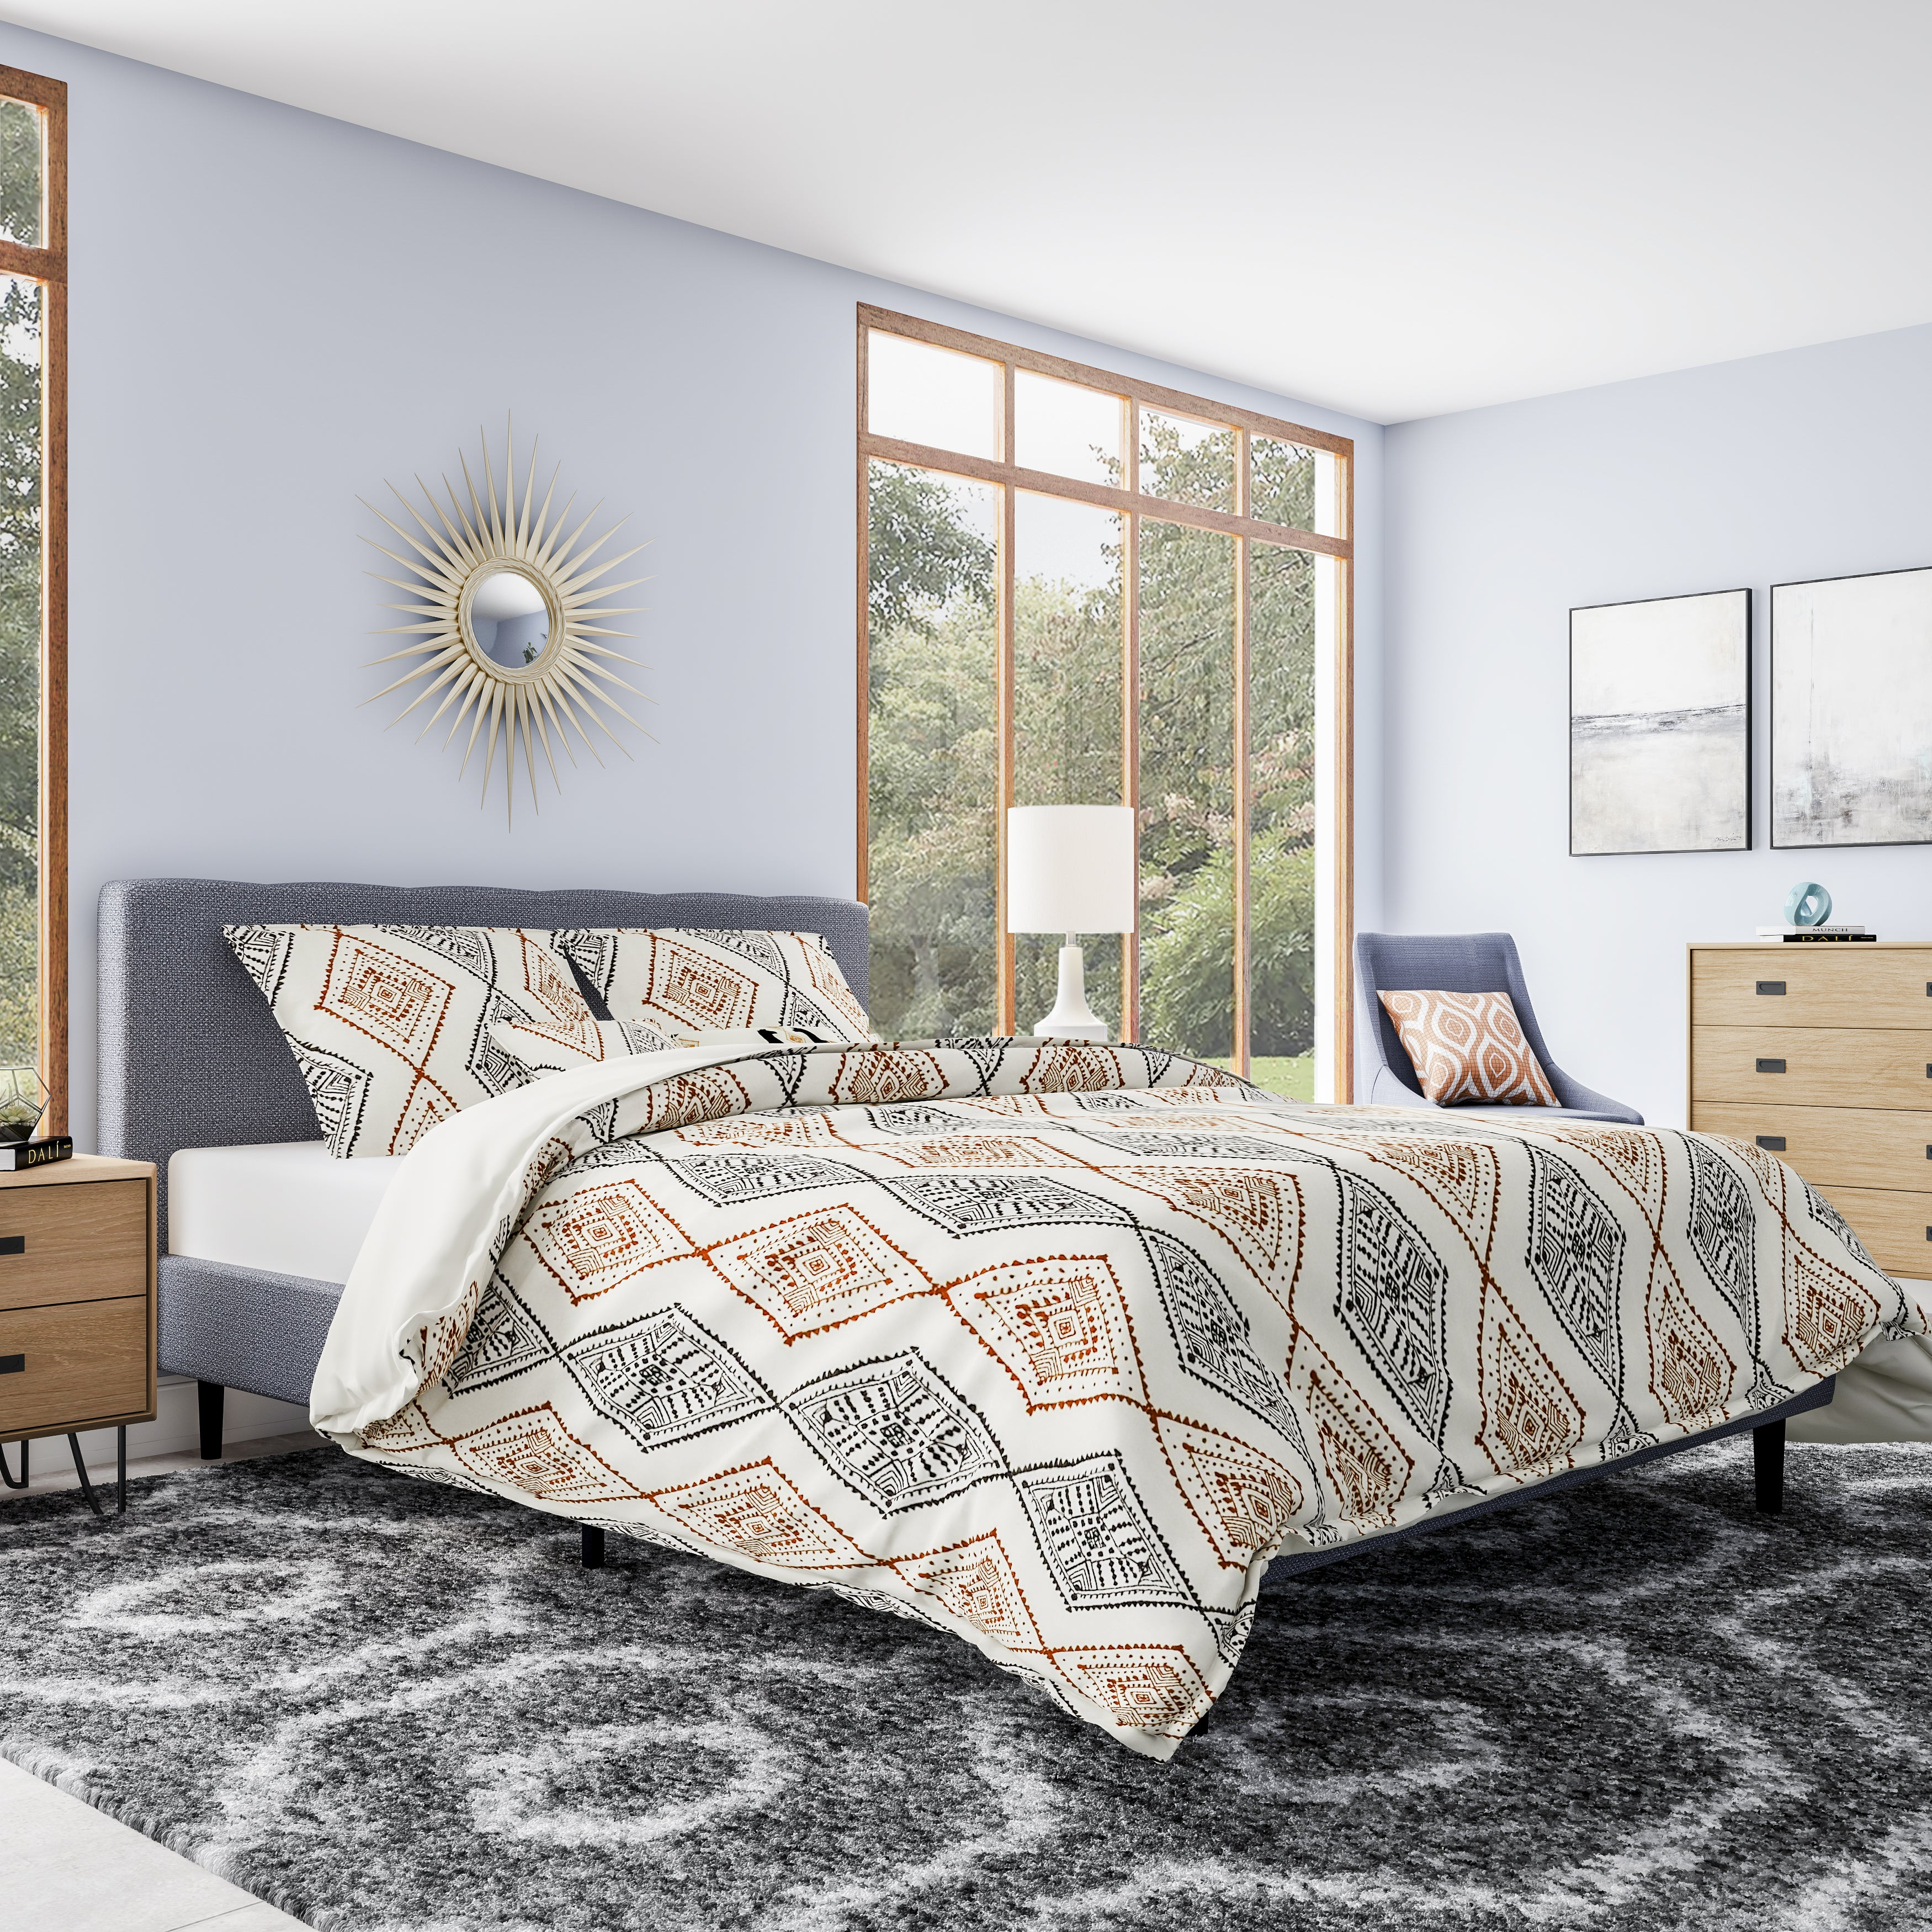 com park overstock bedding free product shipping anderson madison piece bath bed set on comforter